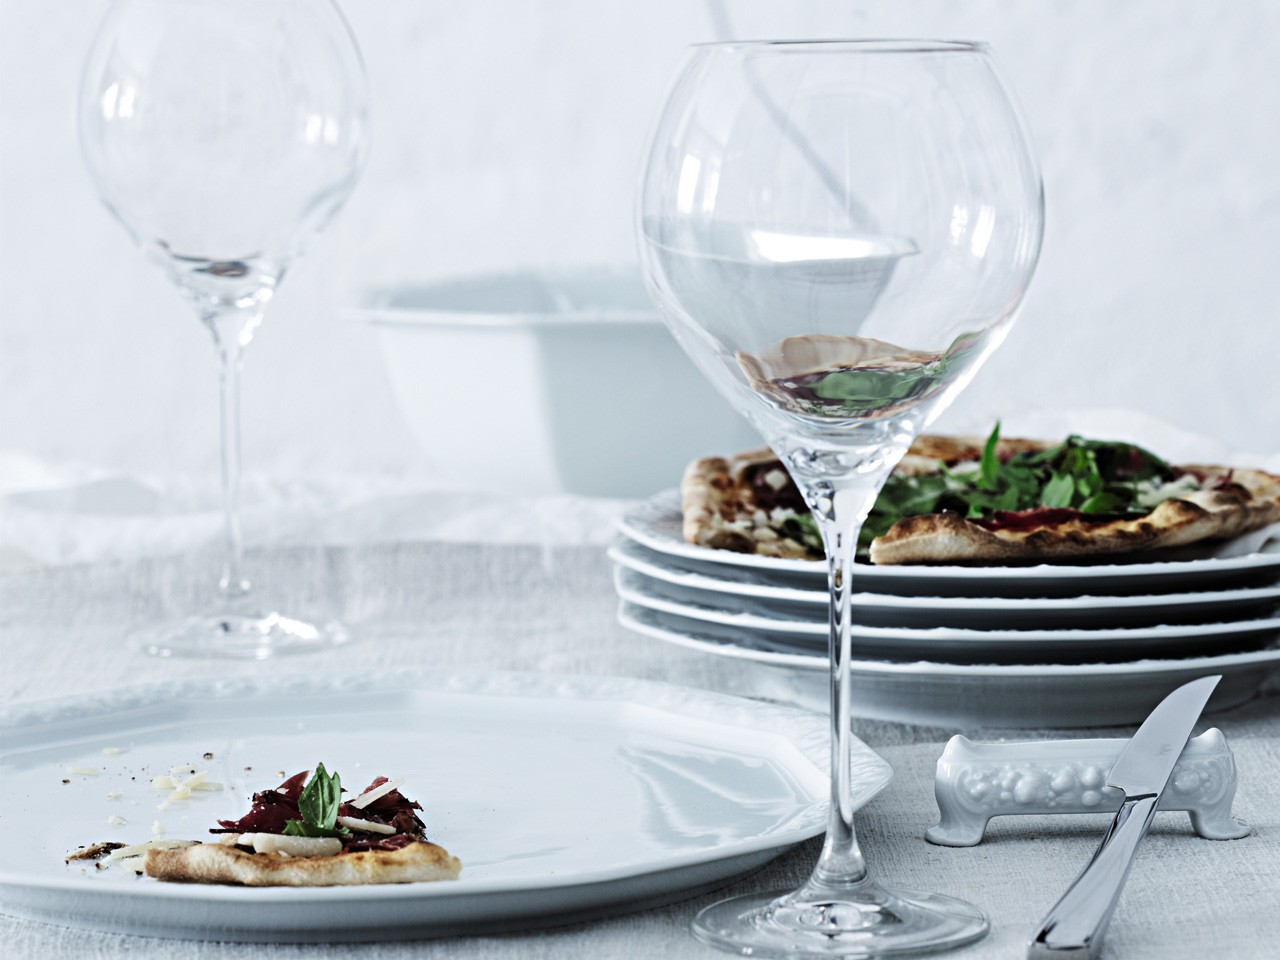 Rosenthal Maria White plates, stacked with pizza on top in the background. In the front white dinner plate with wine glass.